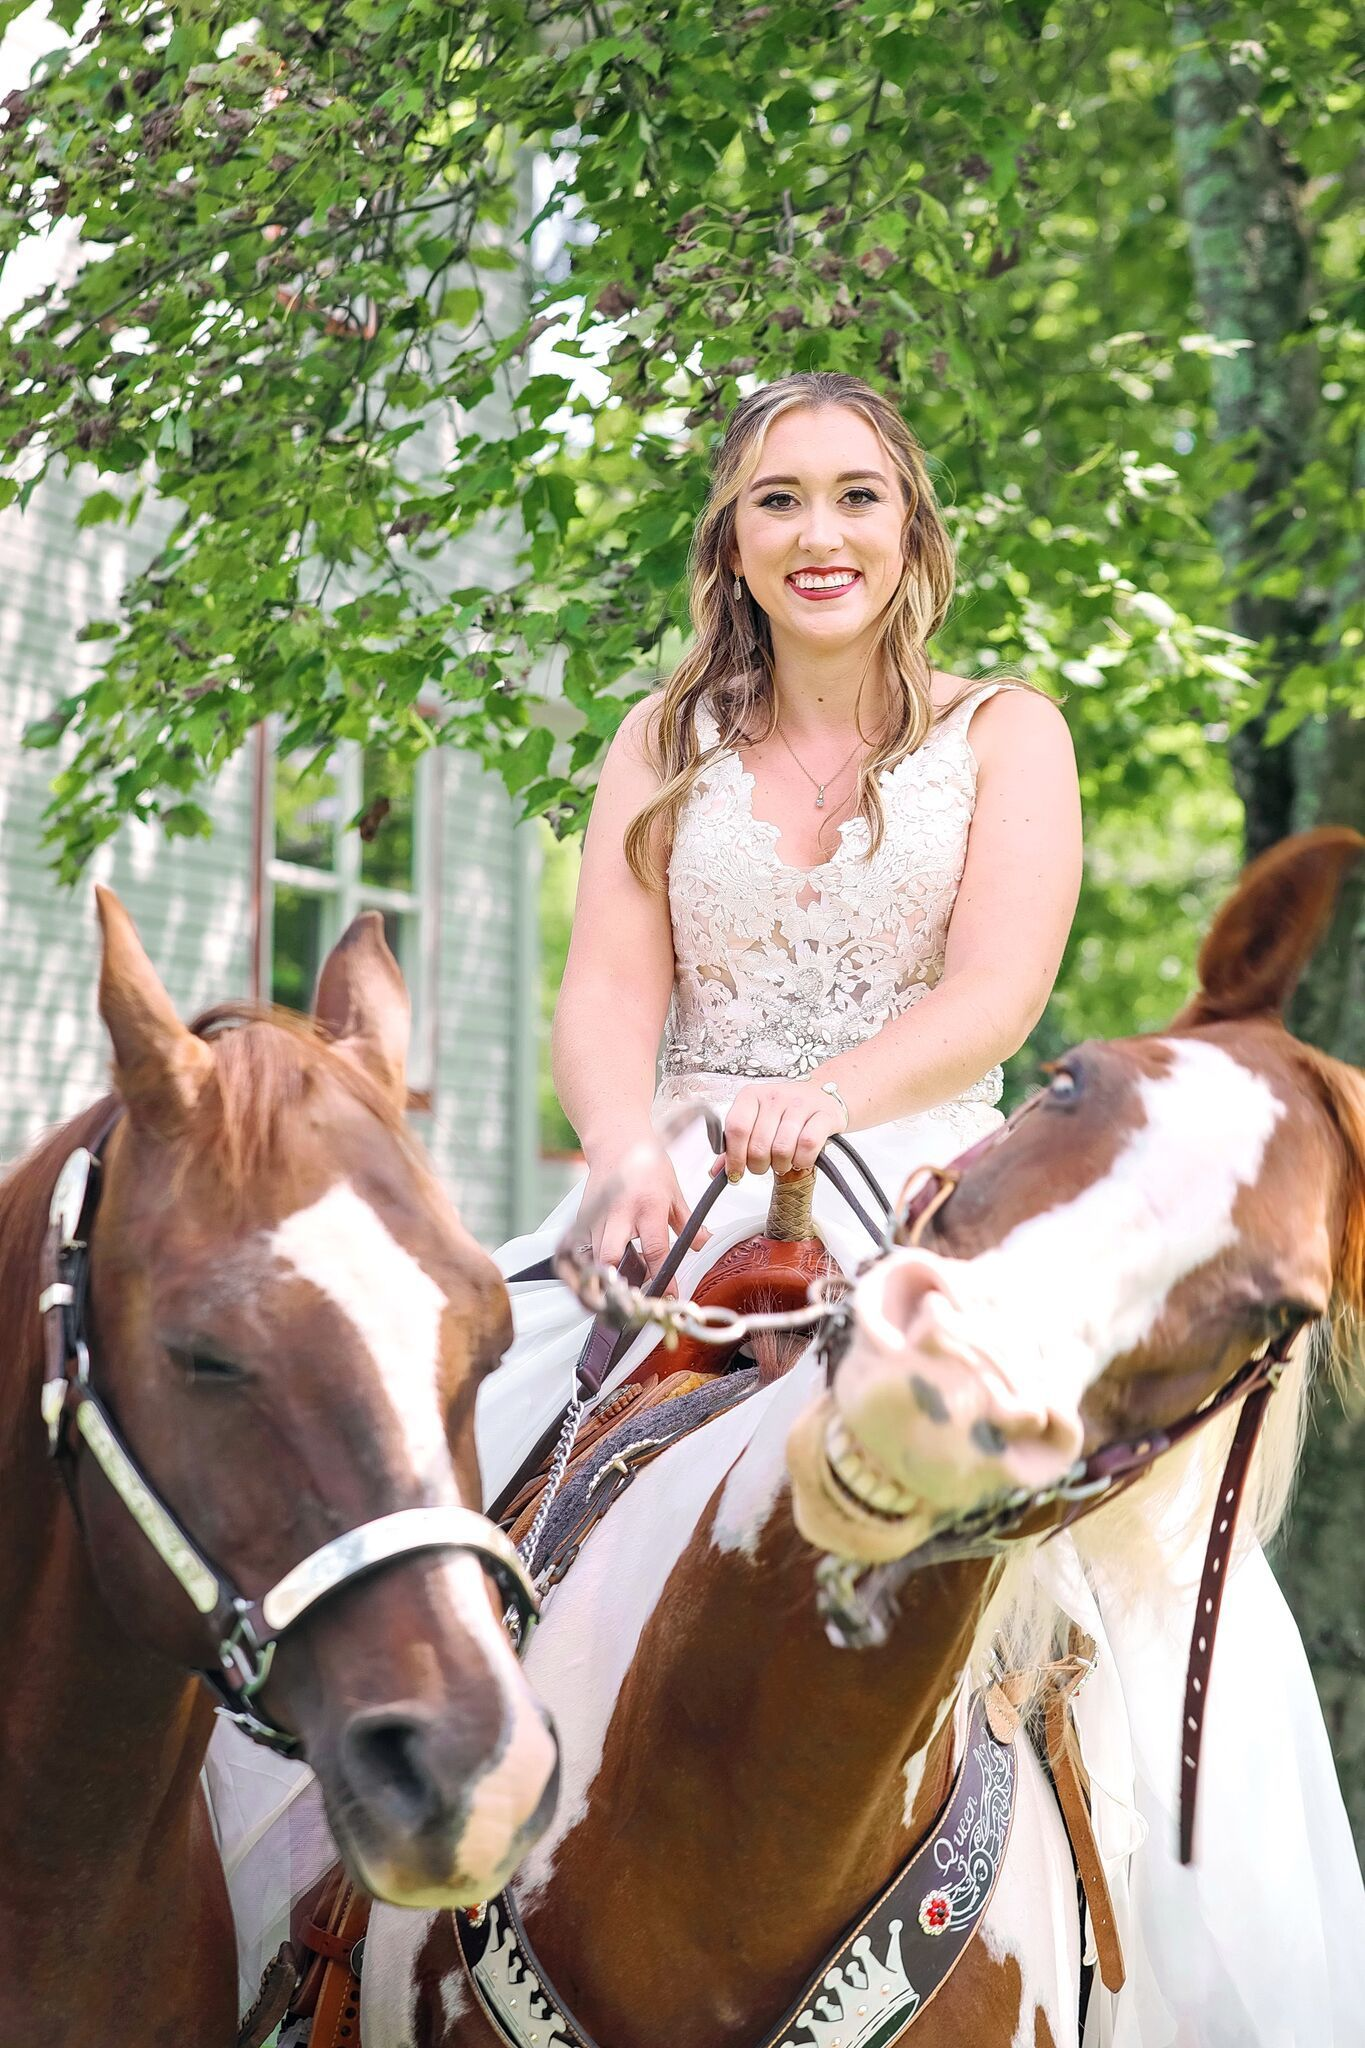 Horse Upstages Bride by Posing With the Biggest Smile in Hilarious Wedding Photo